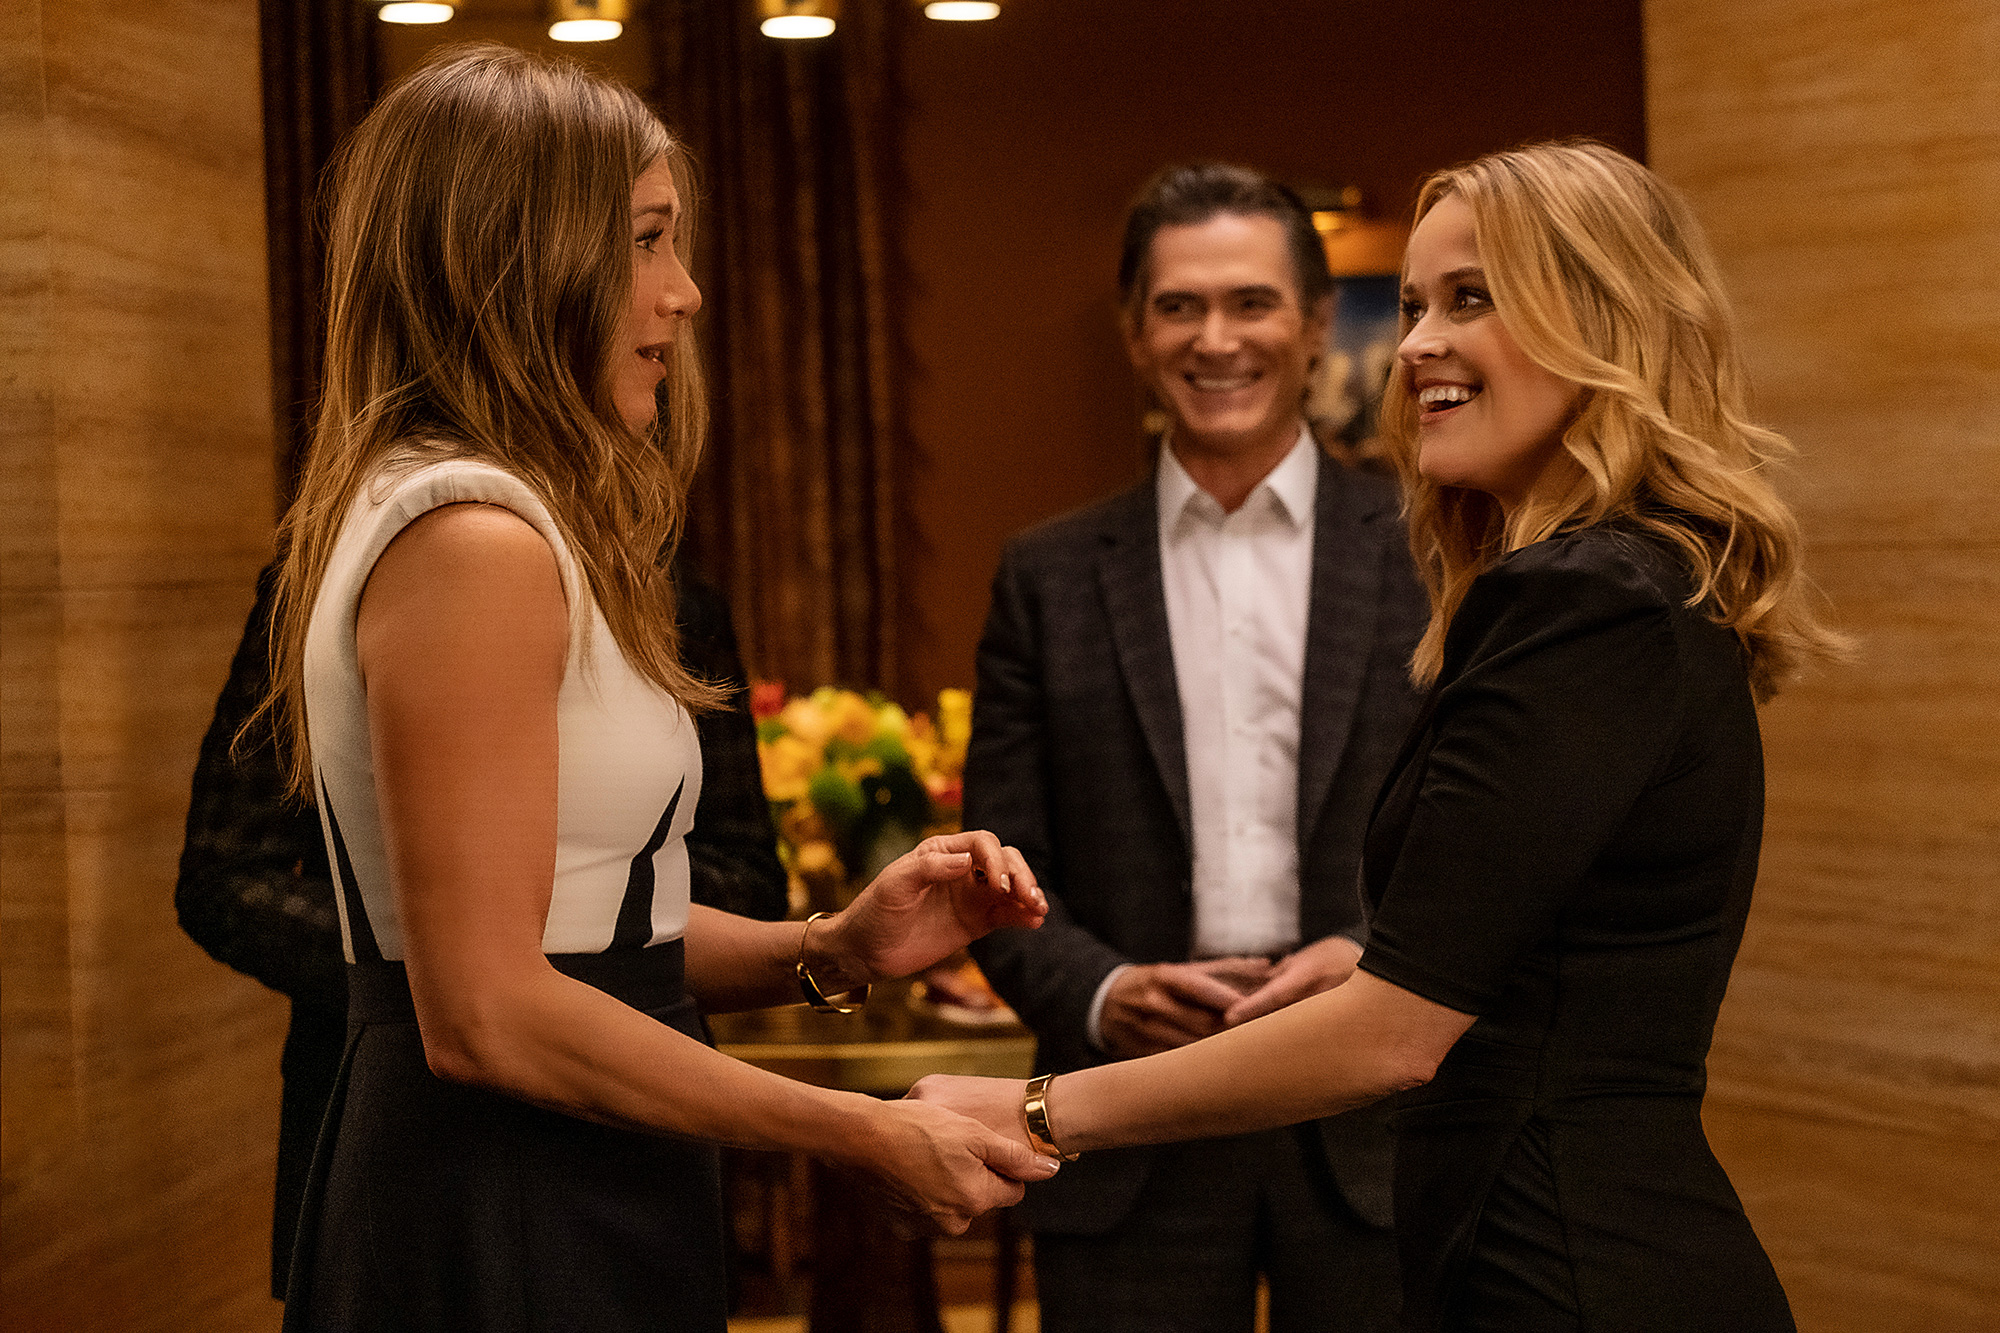 """Jennifer Aniston, Billy Crudup and Reese Witherspoon in """"The Morning Show,"""" premiering September 17, 2021 on Apple TV+."""